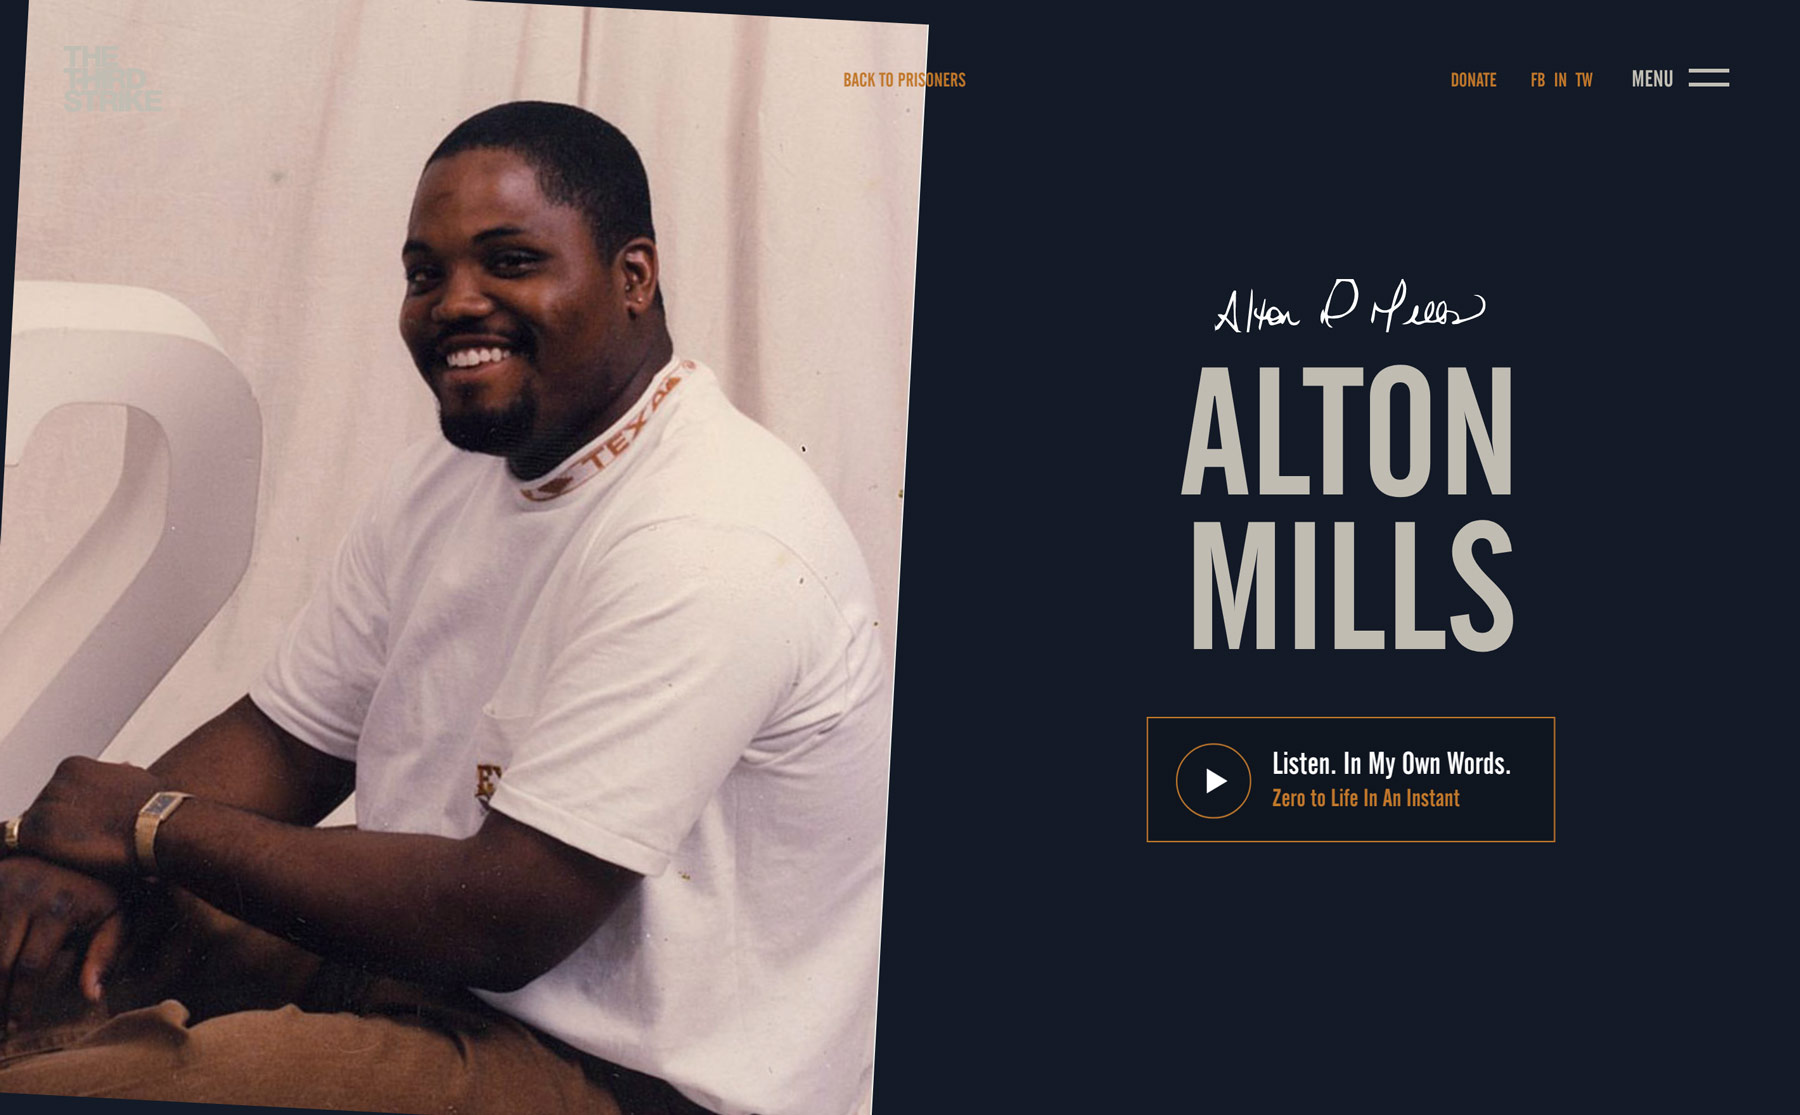 The story about Anton Mills on The Third Strike Campaign page